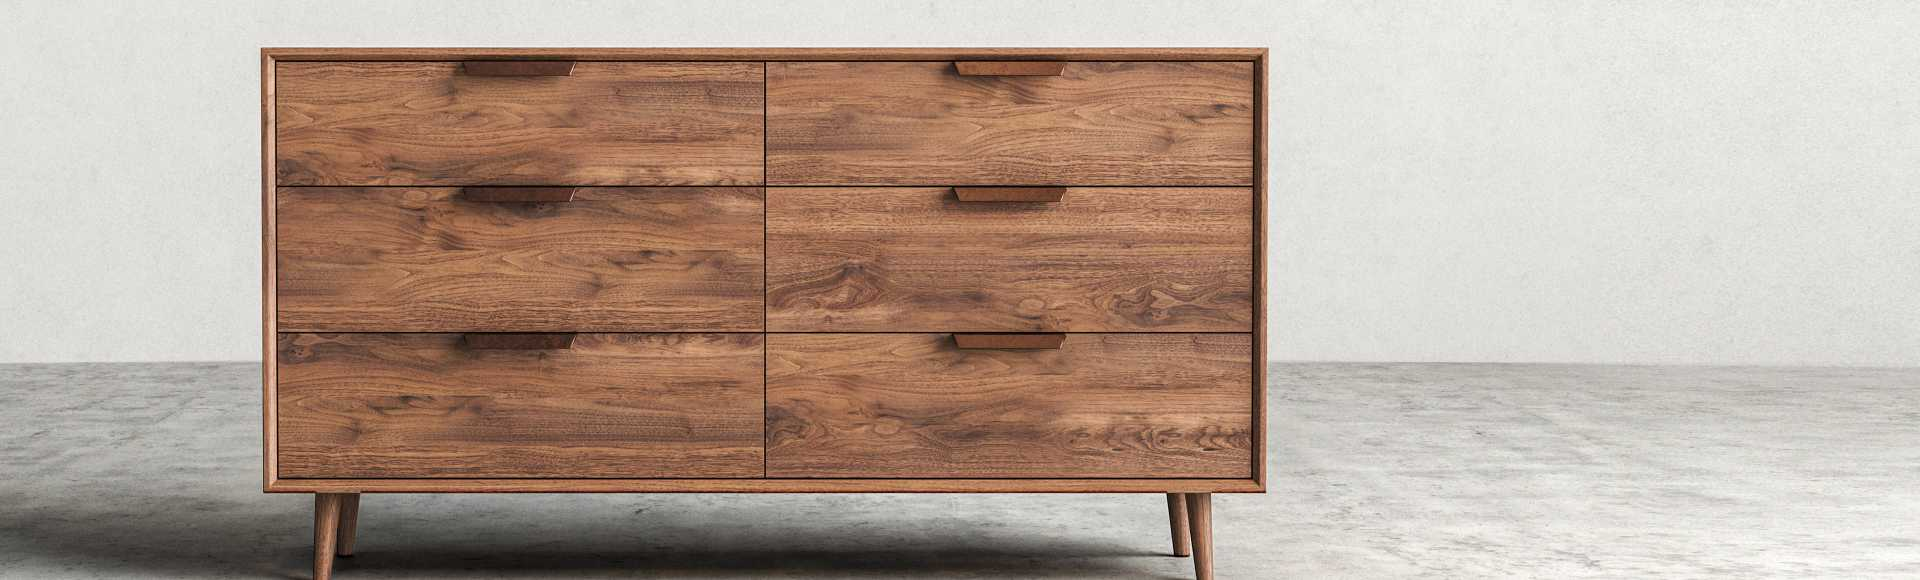 modern dressers  contemporary  rove concepts - home · shop · bedroom dressers